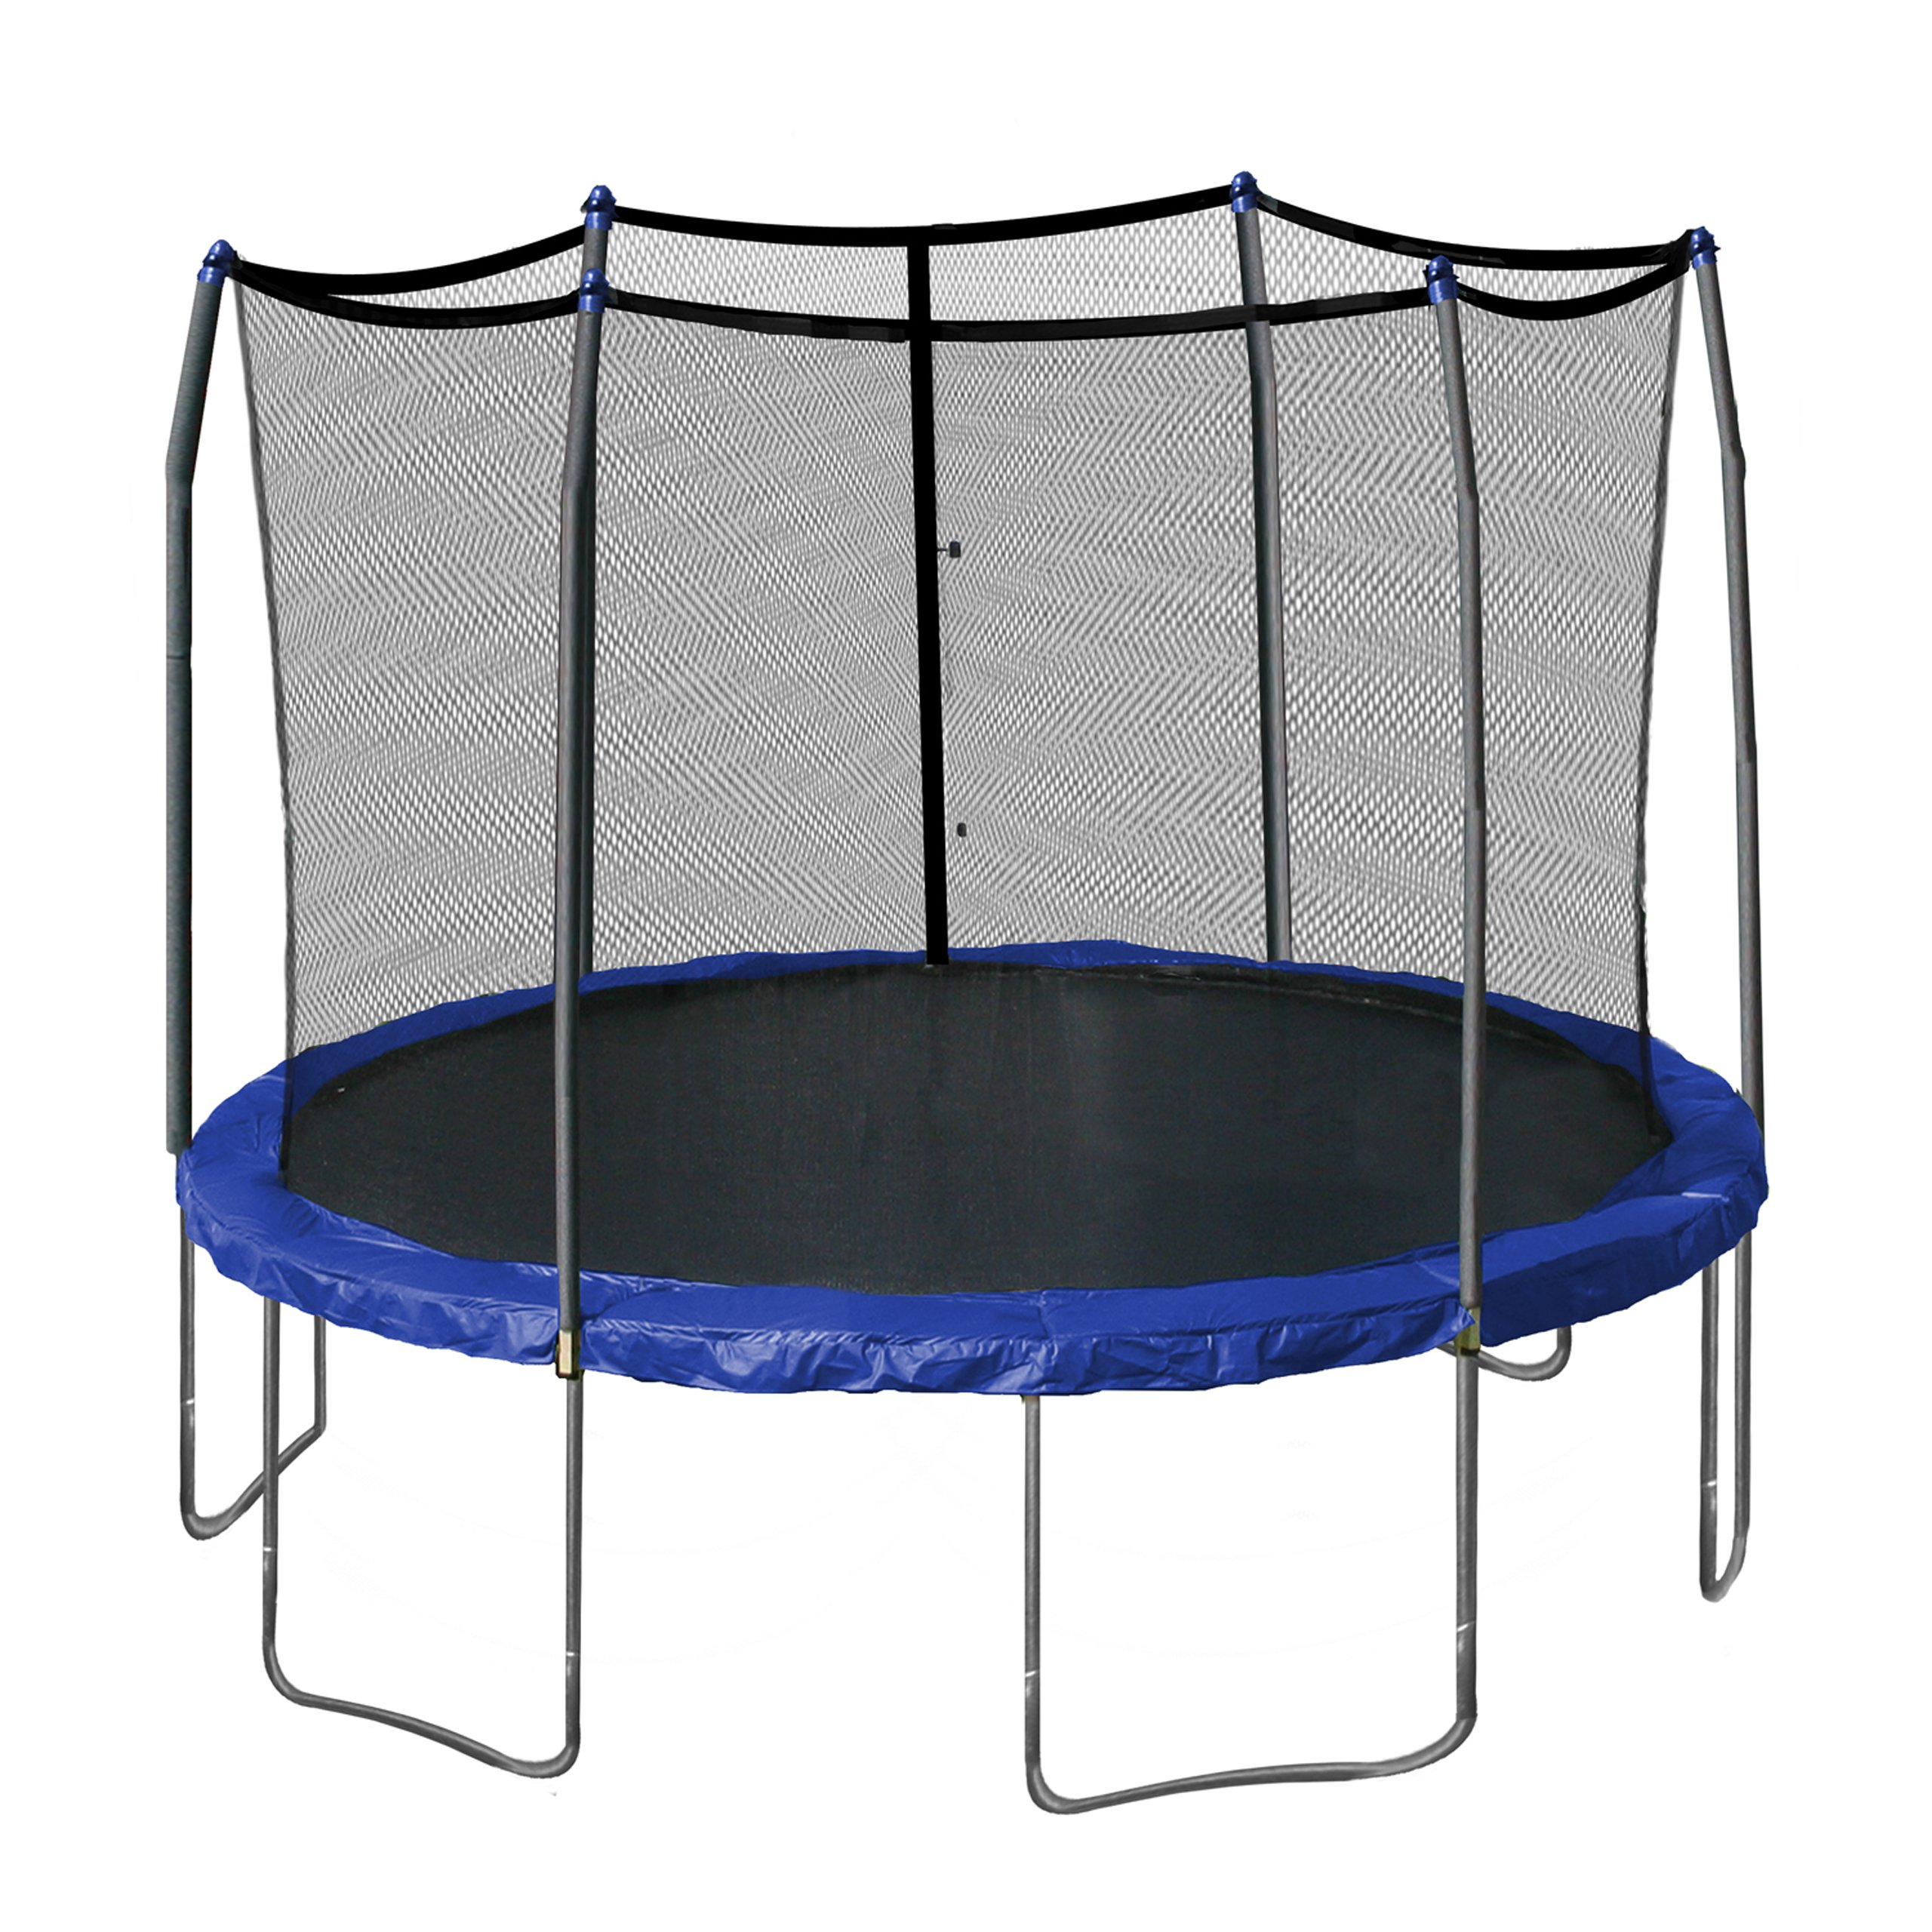 Skywalker Trampolines 12-Feet Round Trampoline and Enclosure with Spring Pad, Blue by Skywalker Trampolines